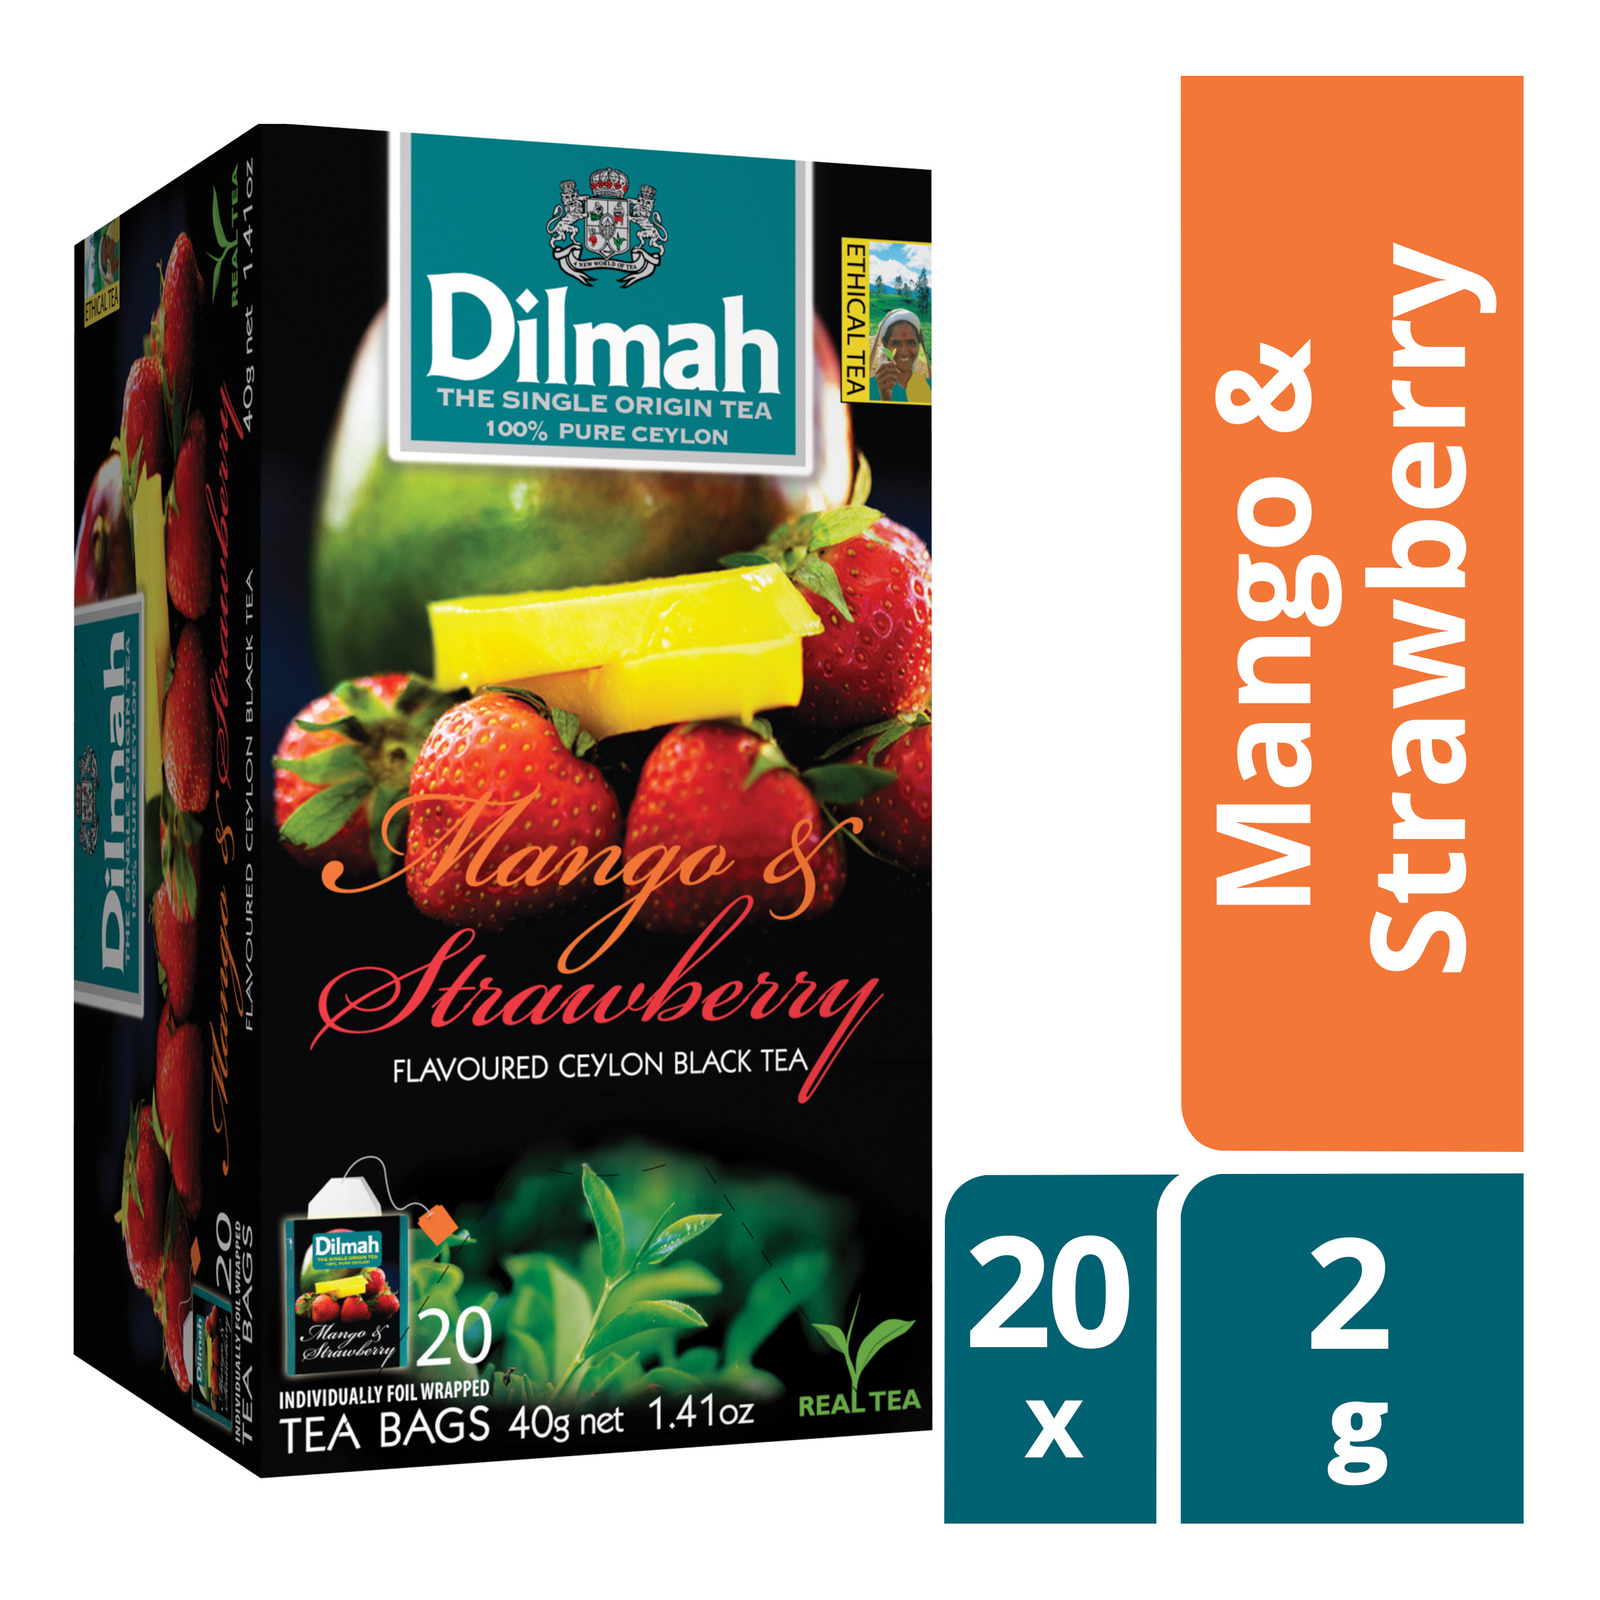 DILMAH Tea Bags - Mango & Strawberry Flavoured Ceylon Black Tea 20sX2g